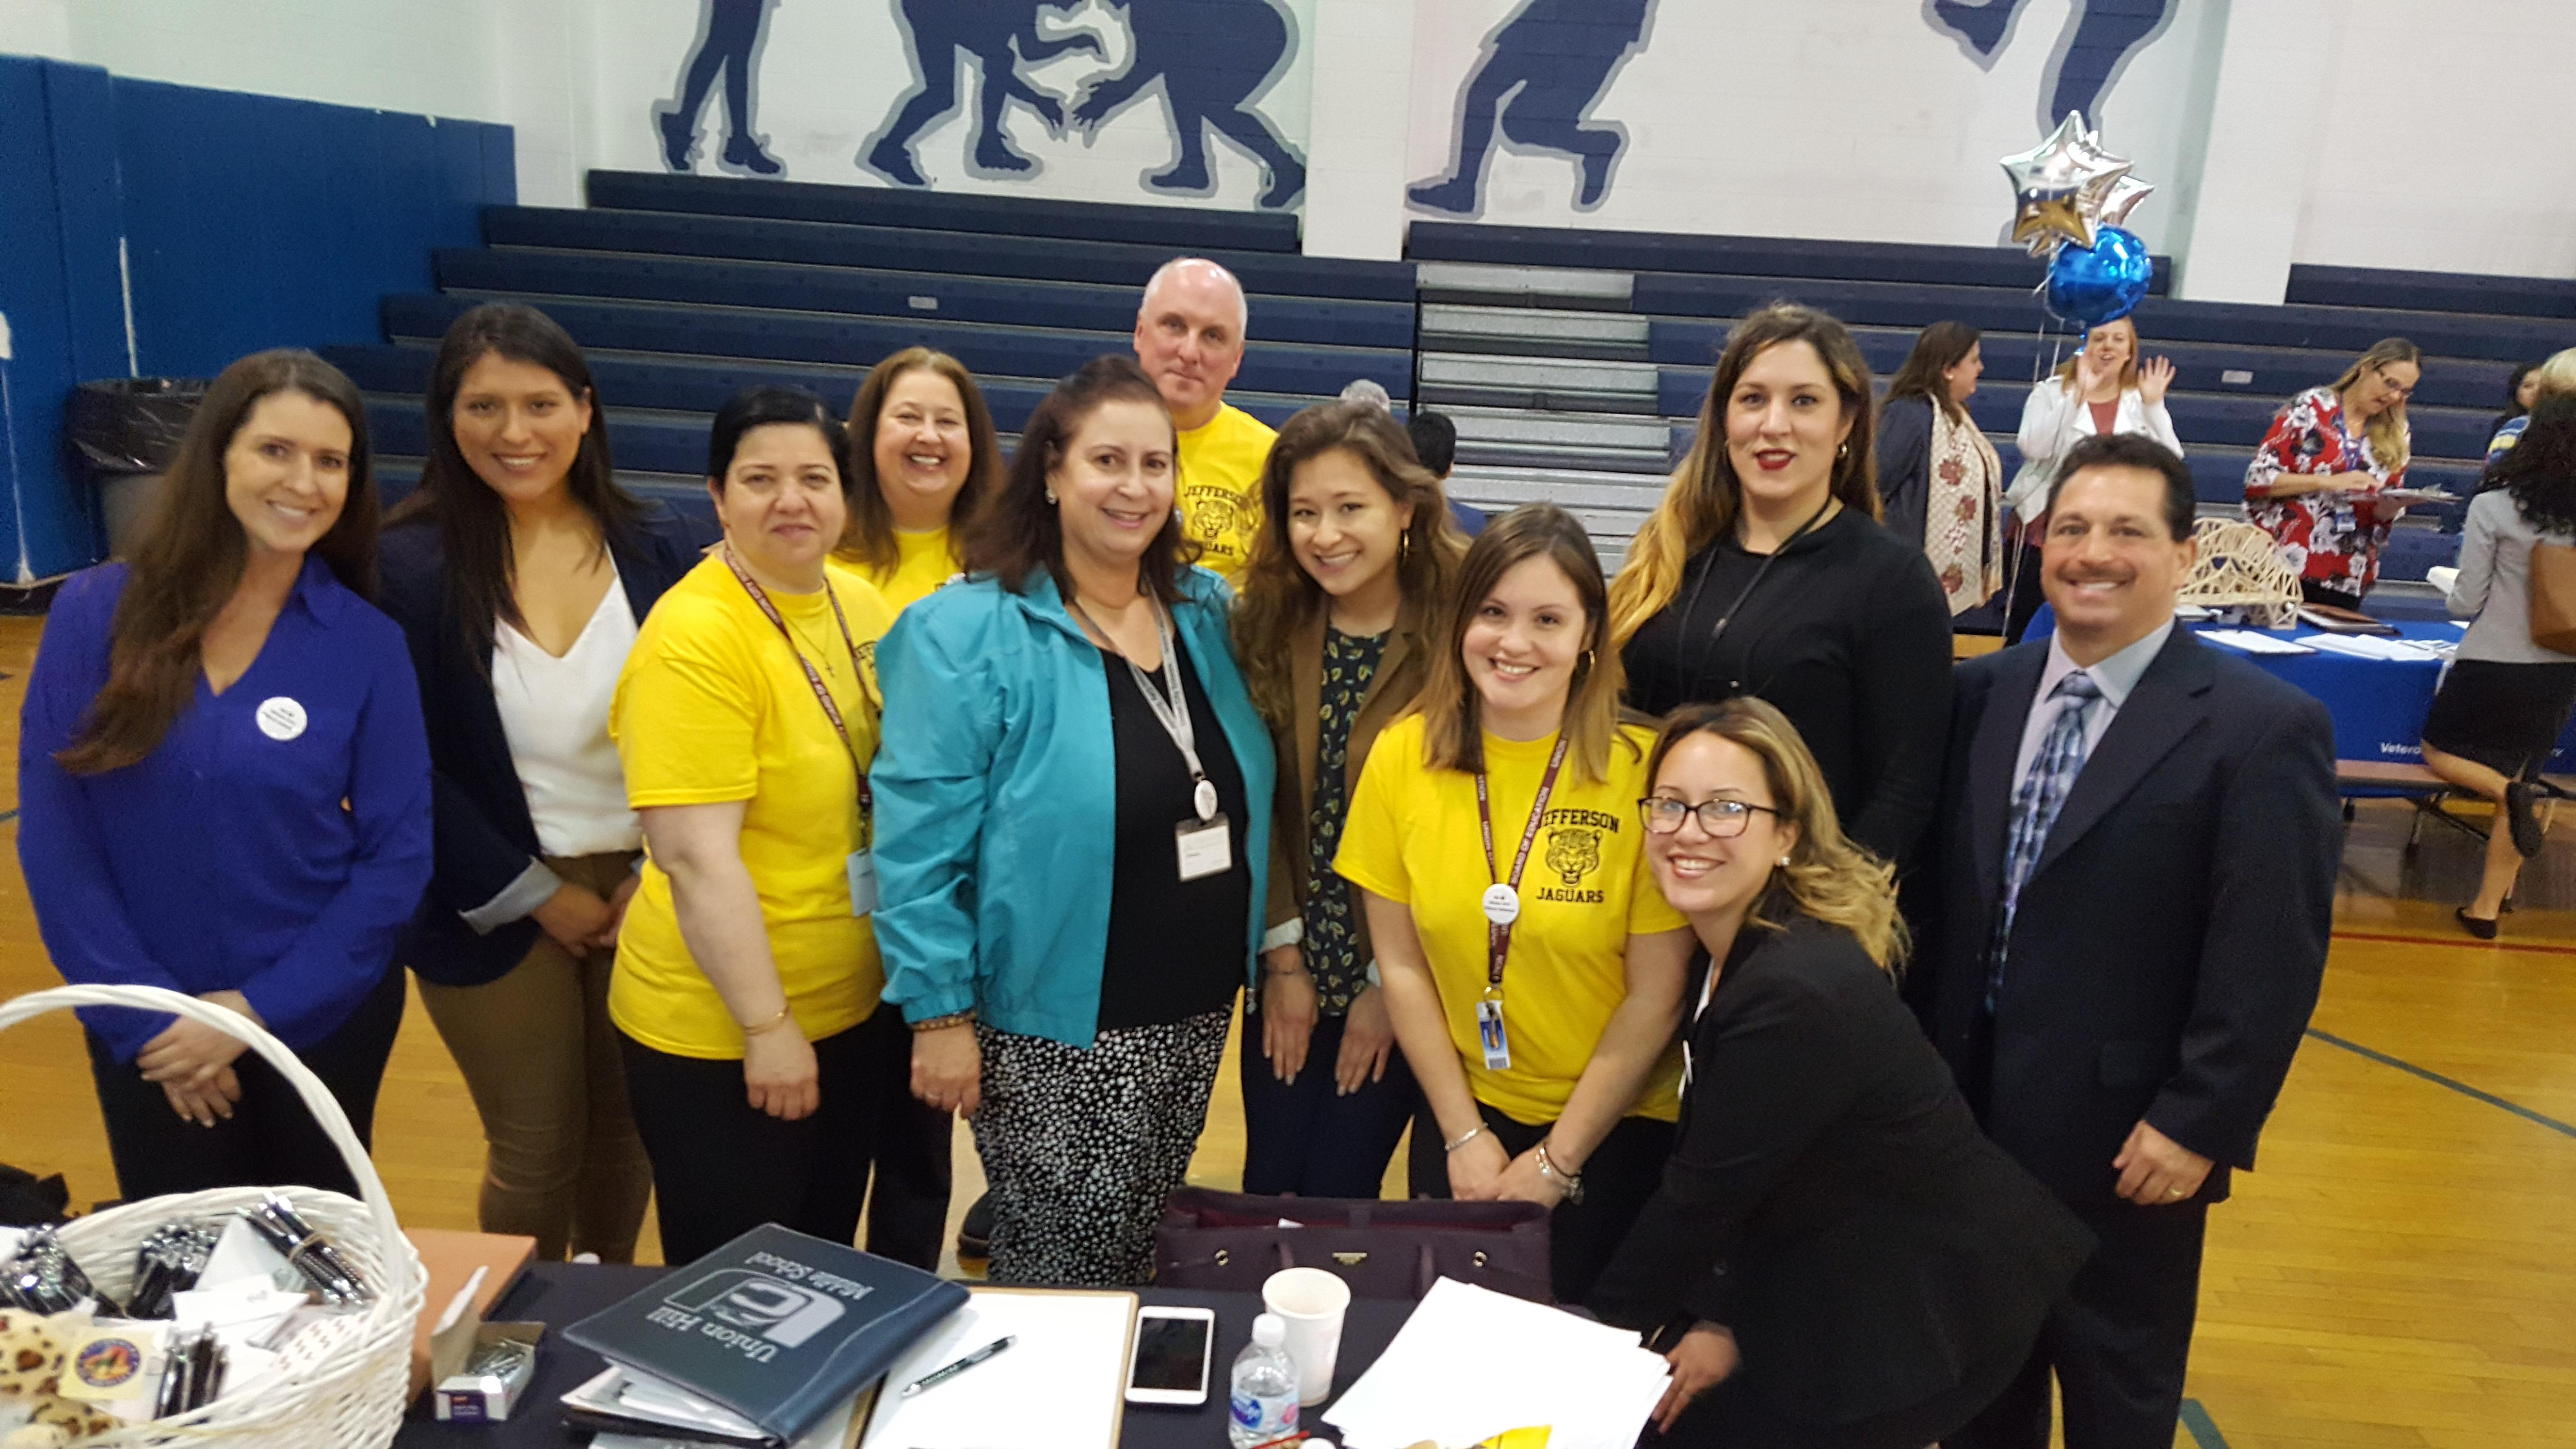 mrs abbato and the staff of jefferson at job fair 2